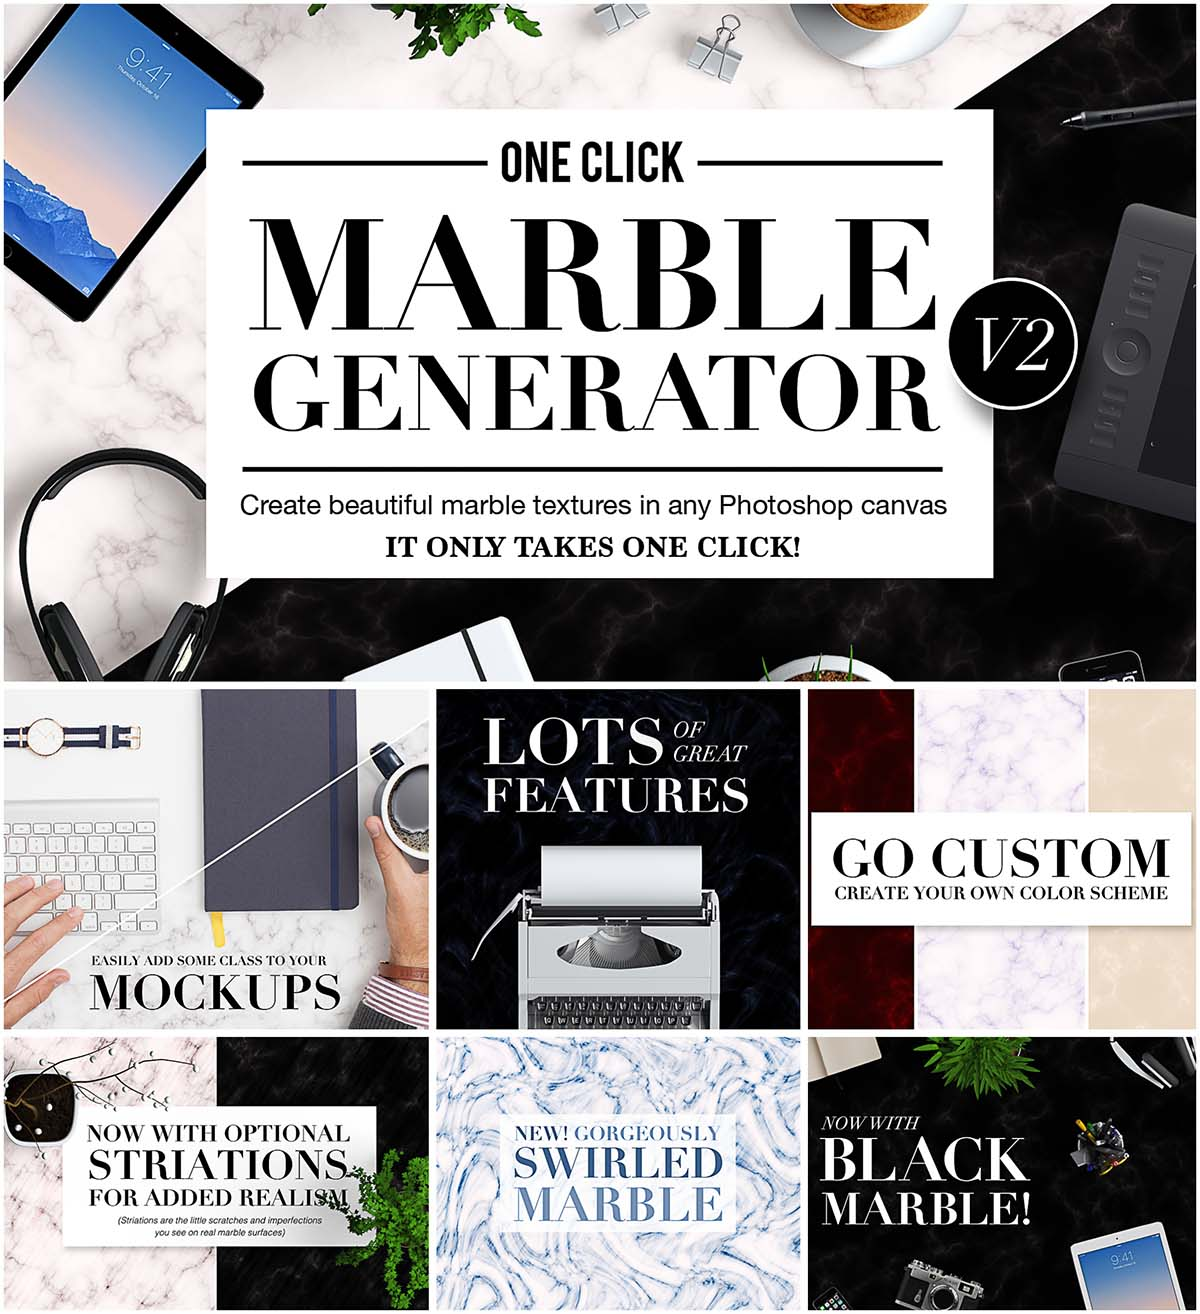 One click marble generator